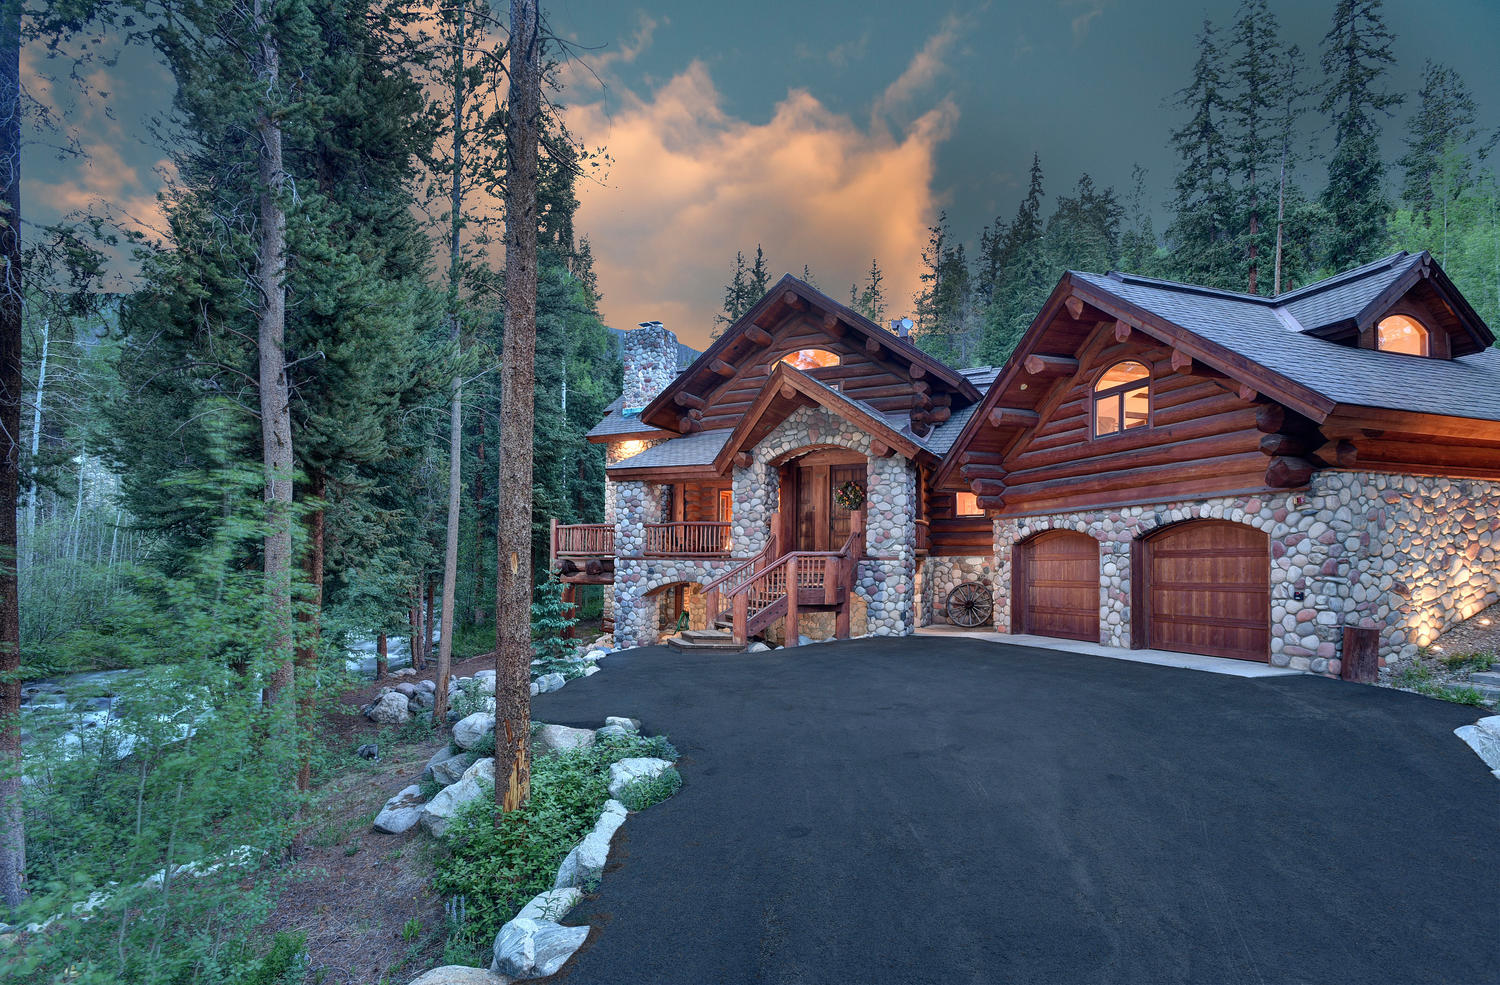 Pictured: 75 Stoney Trail, Keystone, CO. Listed for sale by LIV Sotheby's International Realty for $3,100,000.